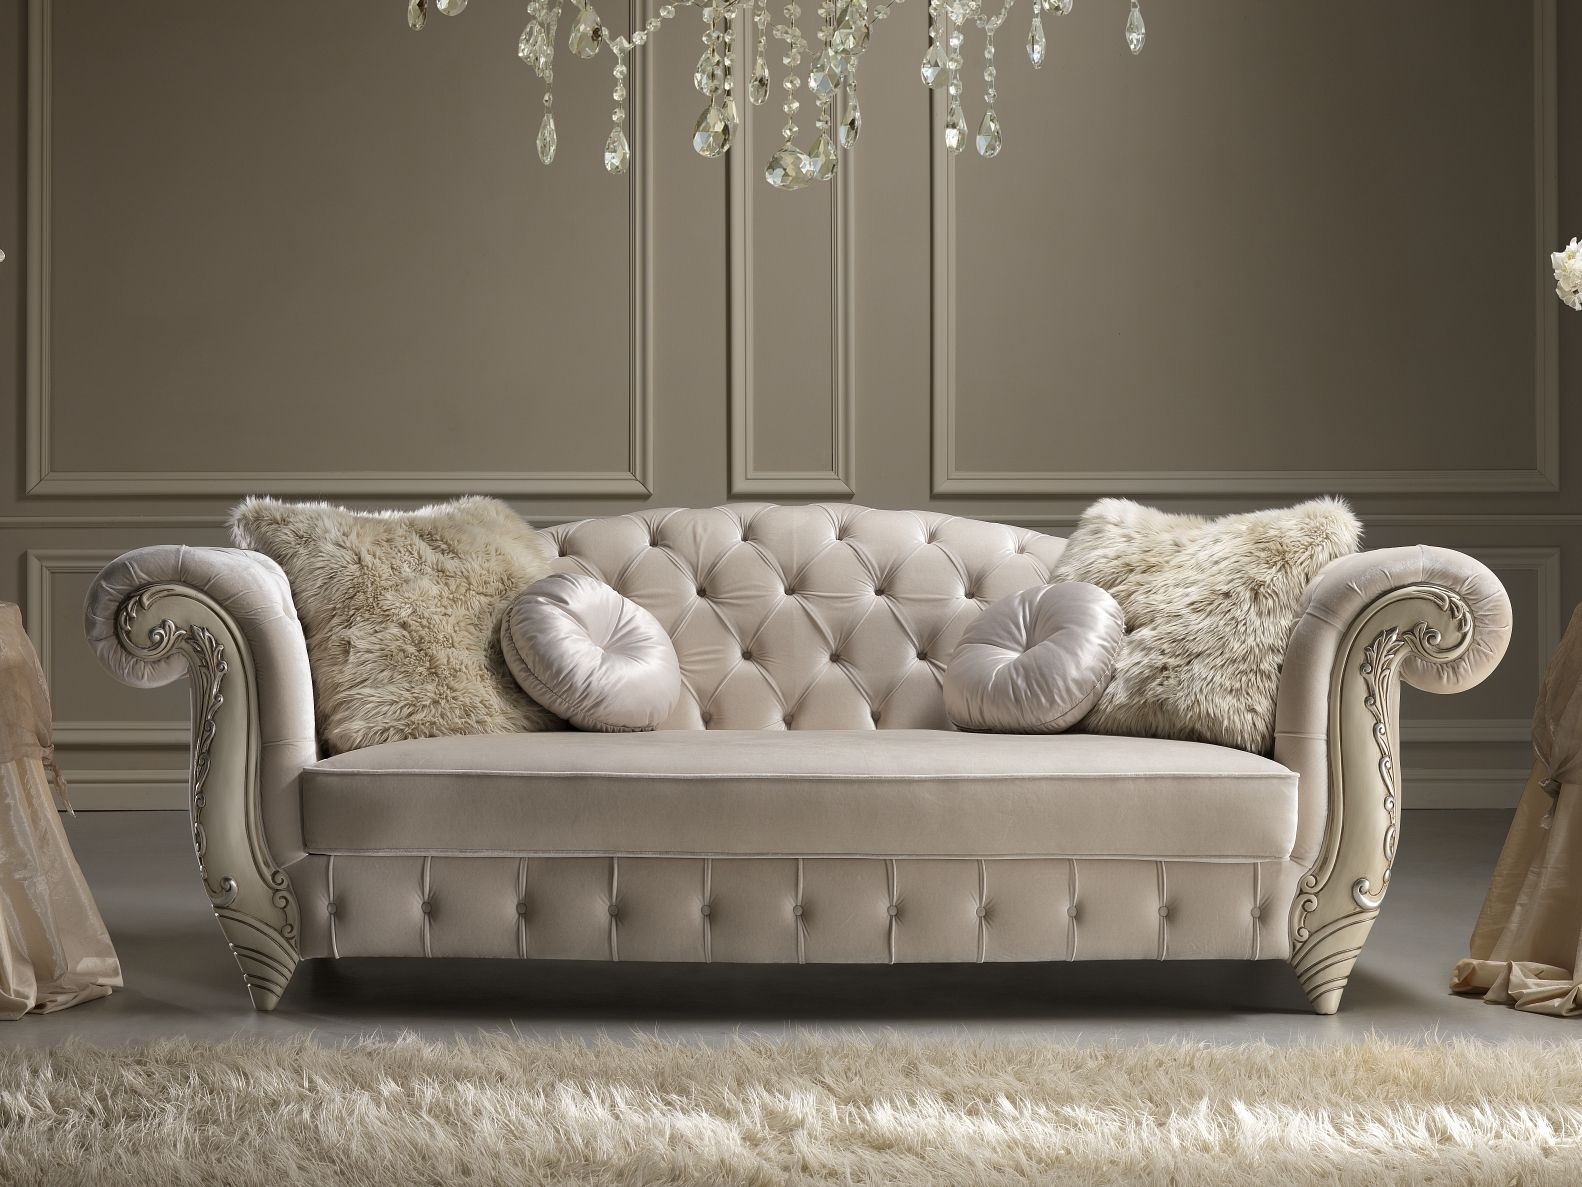 Tremendous Download The Catalogue And Request Prices Of Romantic Sofa Camellatalisay Diy Chair Ideas Camellatalisaycom